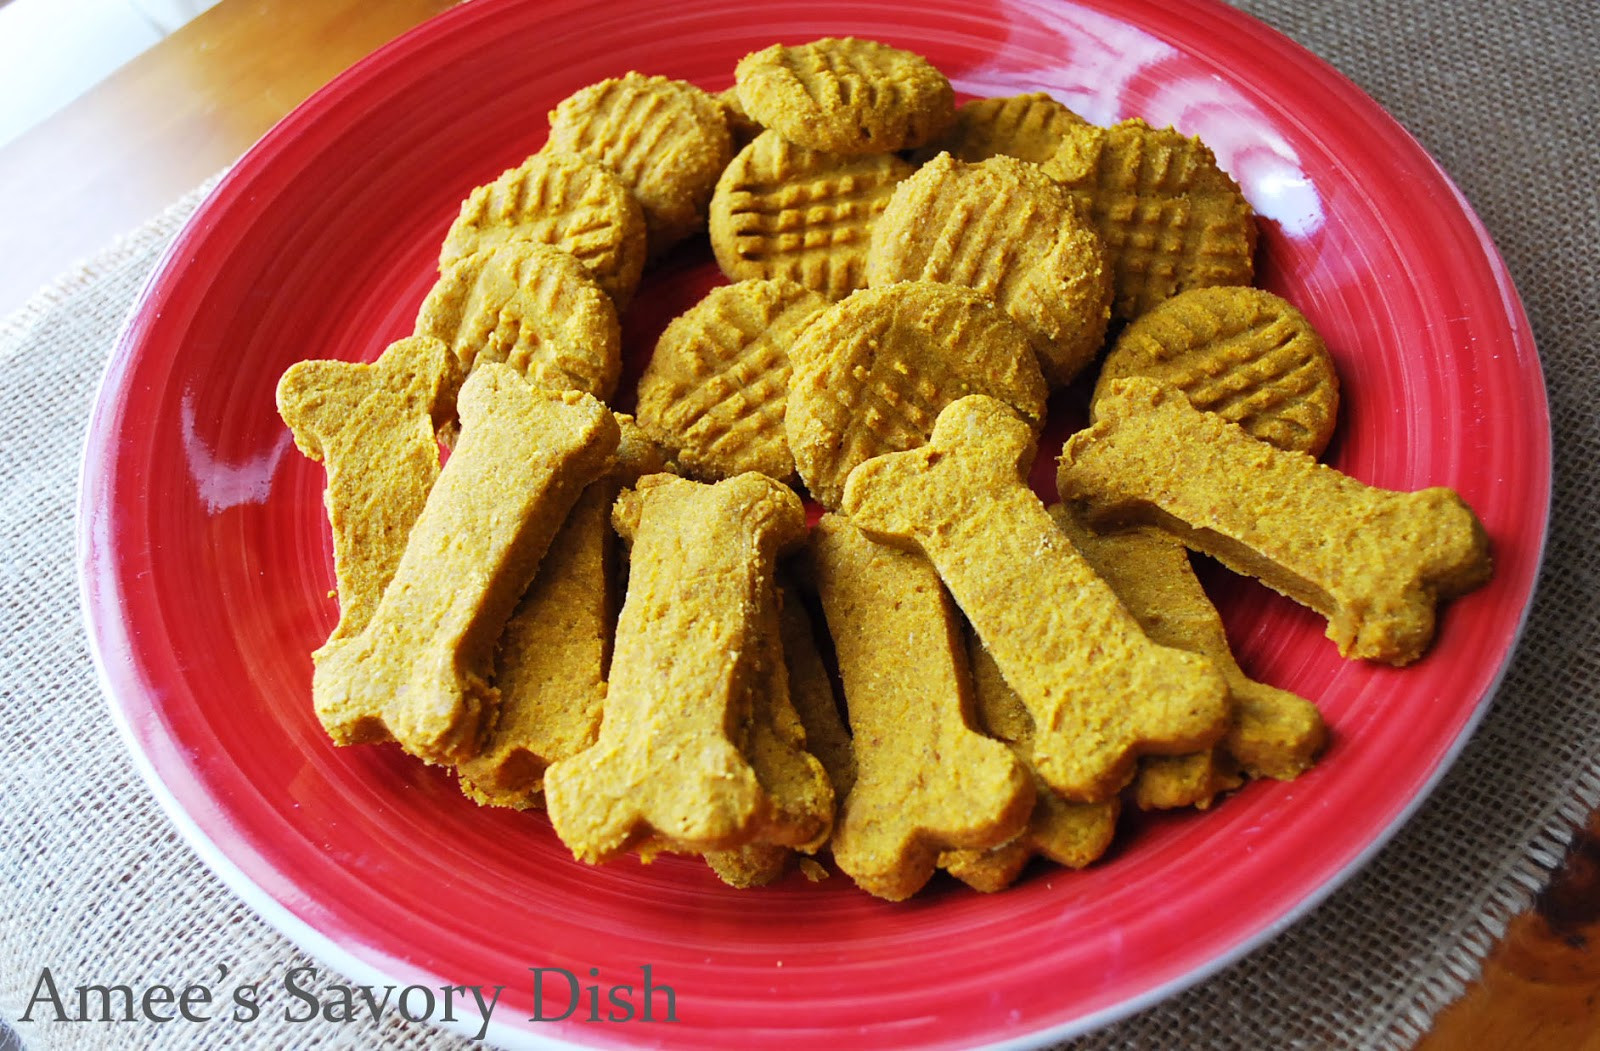 Healthy Dog Snacks  Healthy Homemade Dog Treats Amee s Savory Dish